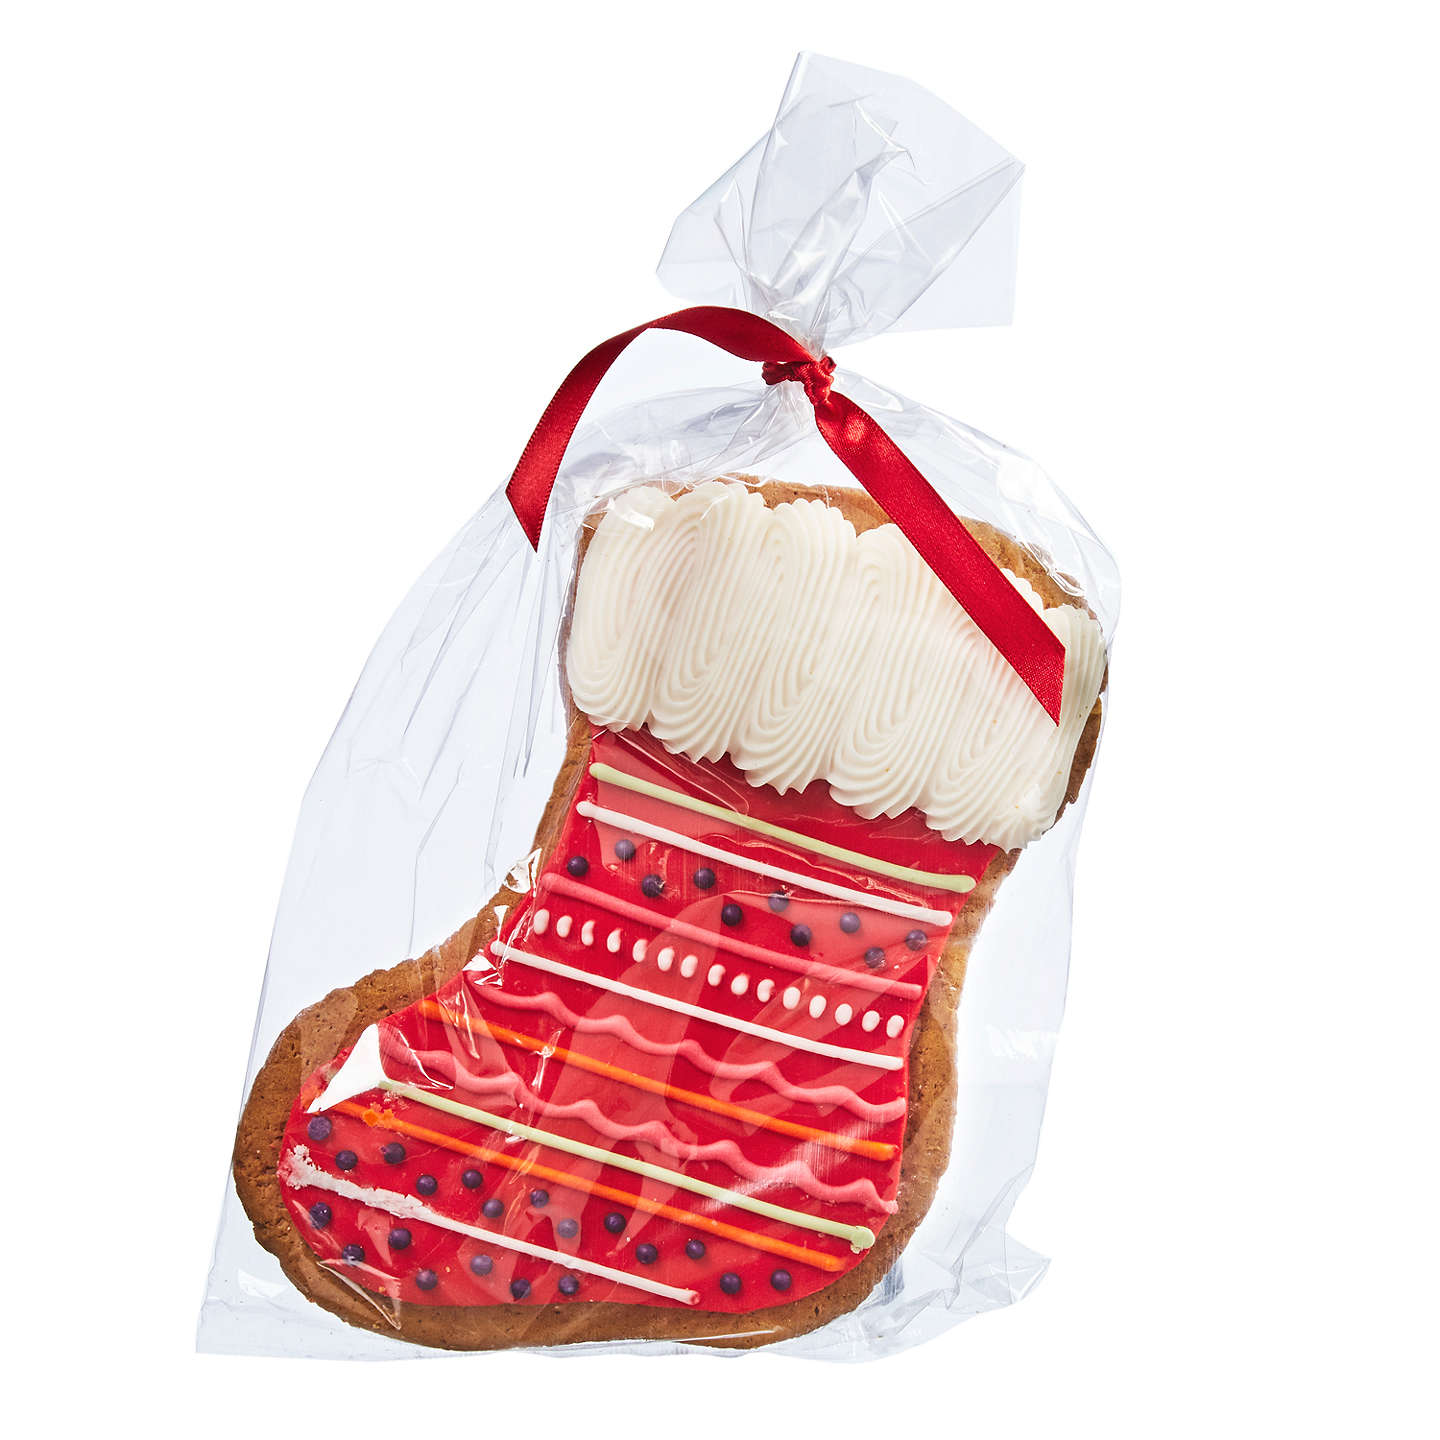 Buyimage On Food Hand Decorated Iced Gingerbread Christmas Stocking, 180G